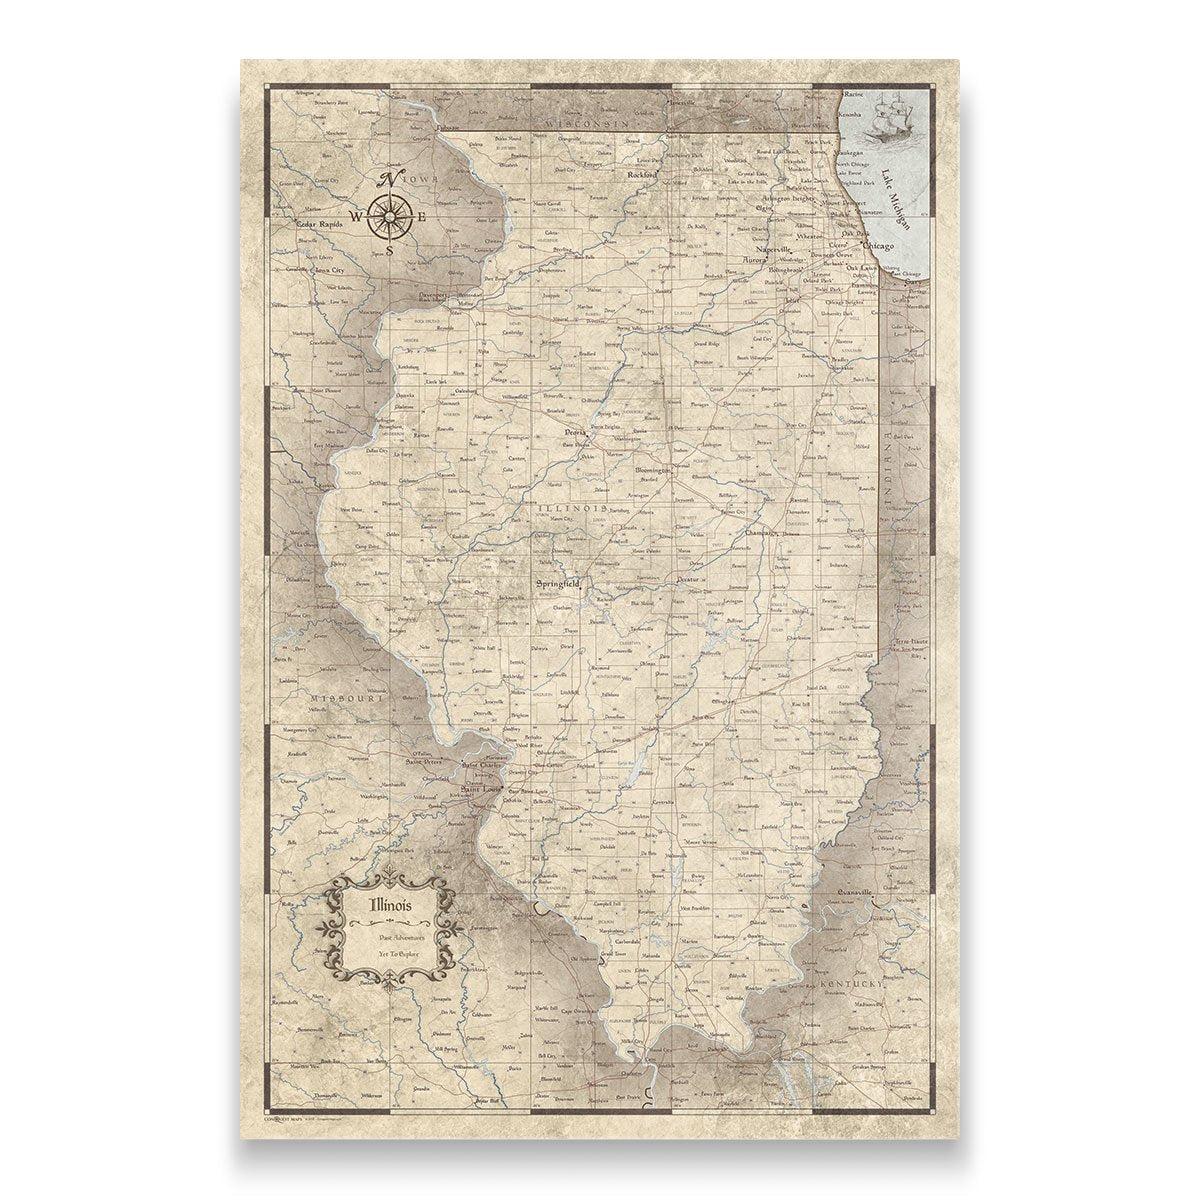 Illinois Travel Map Pin Board with Push Pins: Rustic Vintage